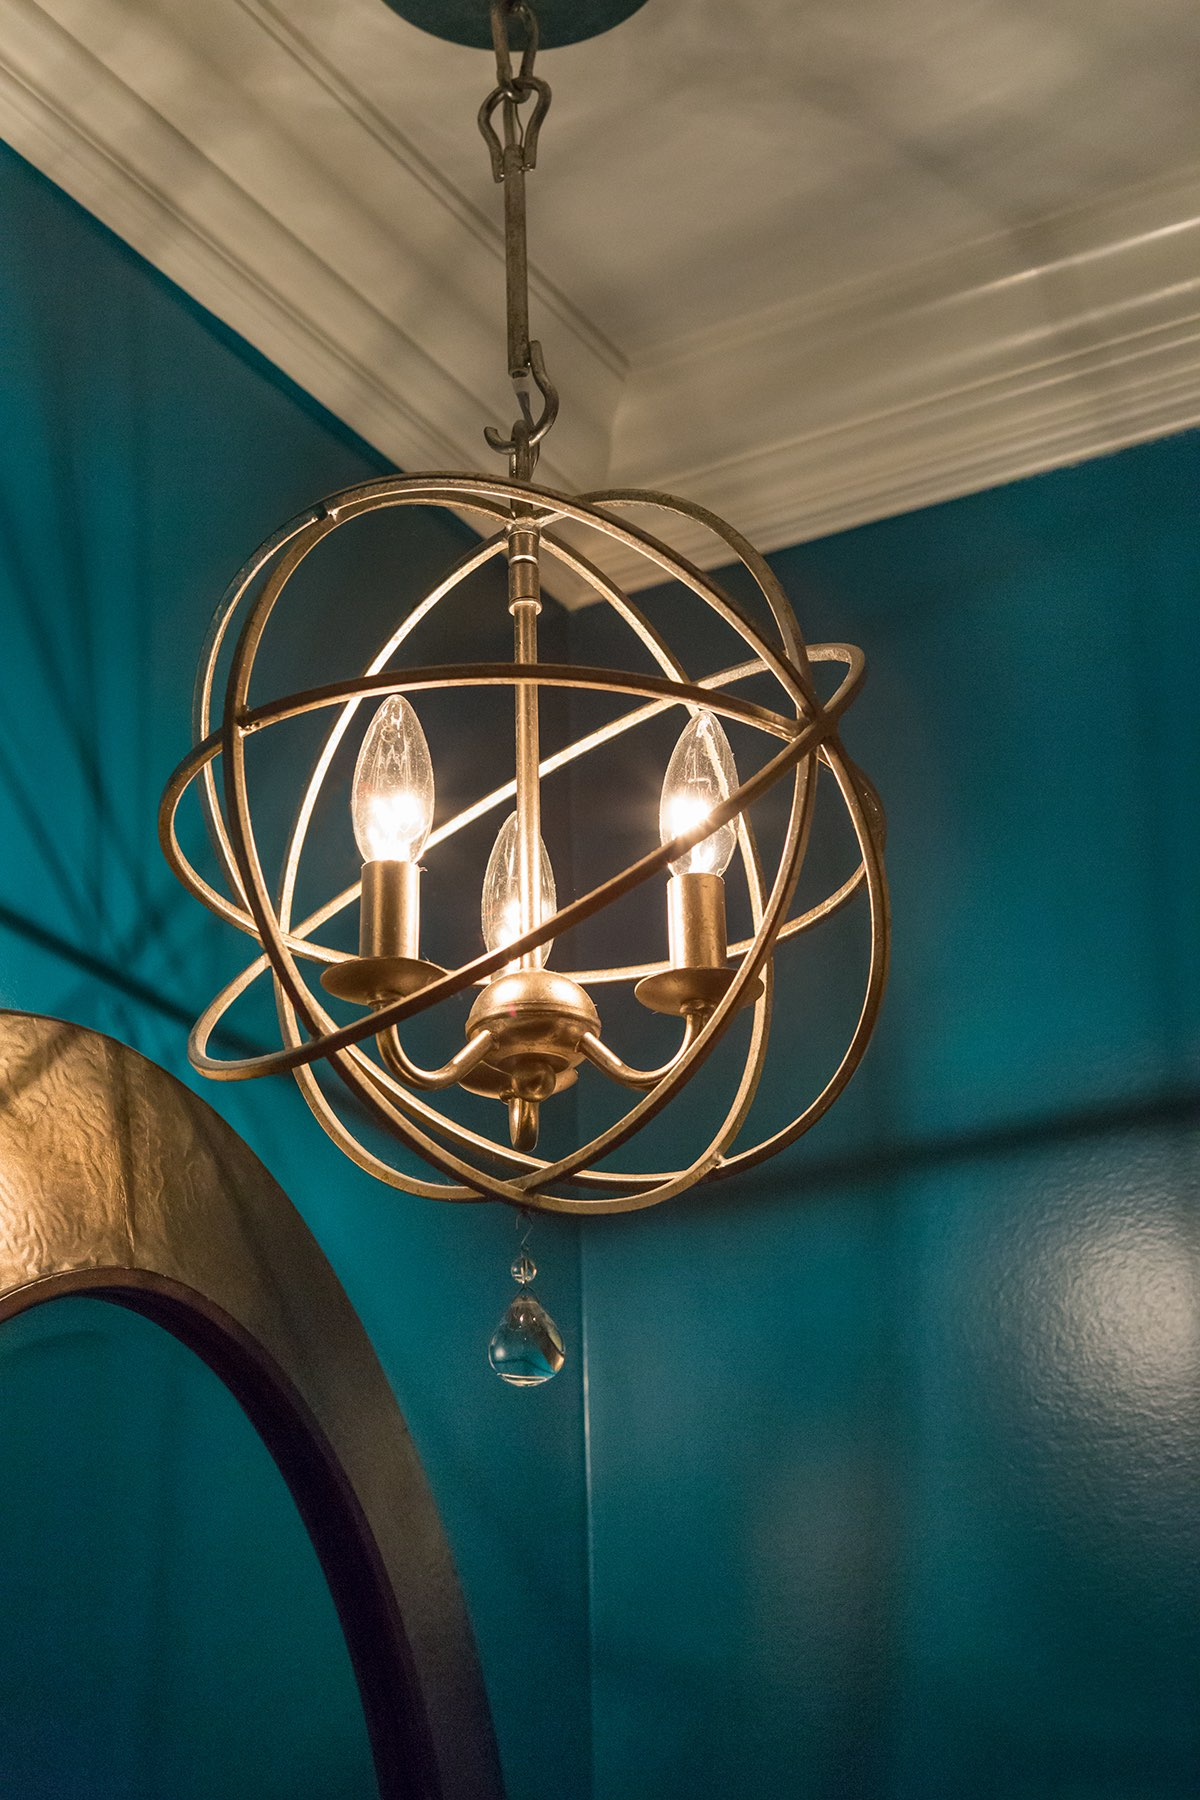 Powder room pendant lamp with freeform brass cage shade